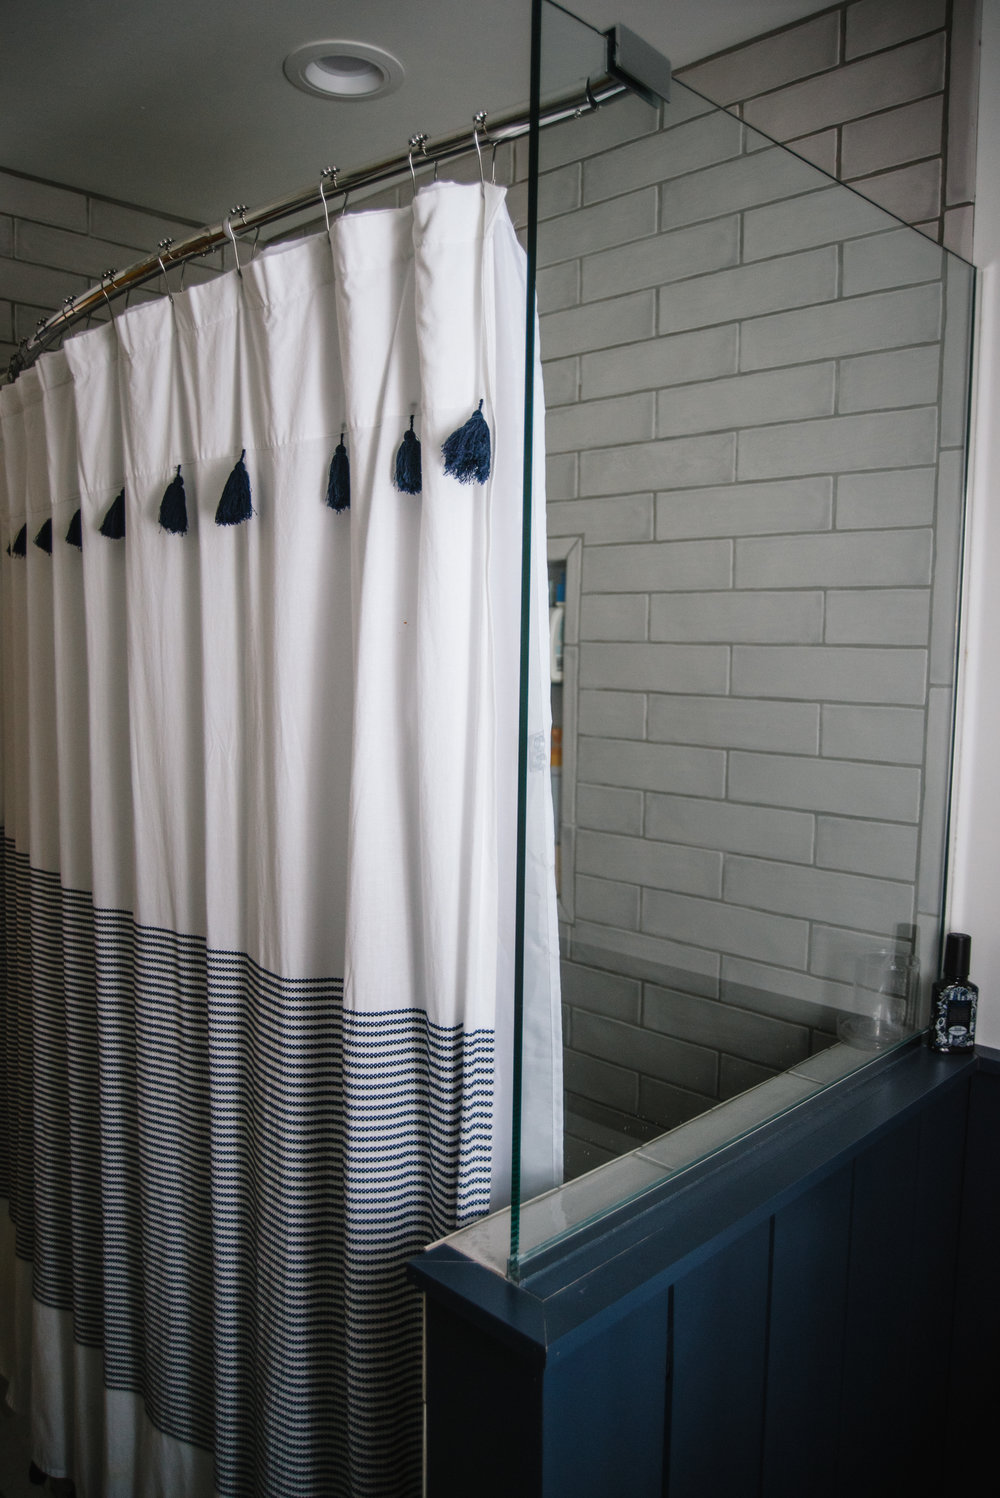 Newly renovated bath/shower with tempered glass wall..  Shower curtain by Peri Home, bloomingdales .  3x12 Retro Perla gray Tile via the Tile shop . Photo via Rachel Cuthbert Photography